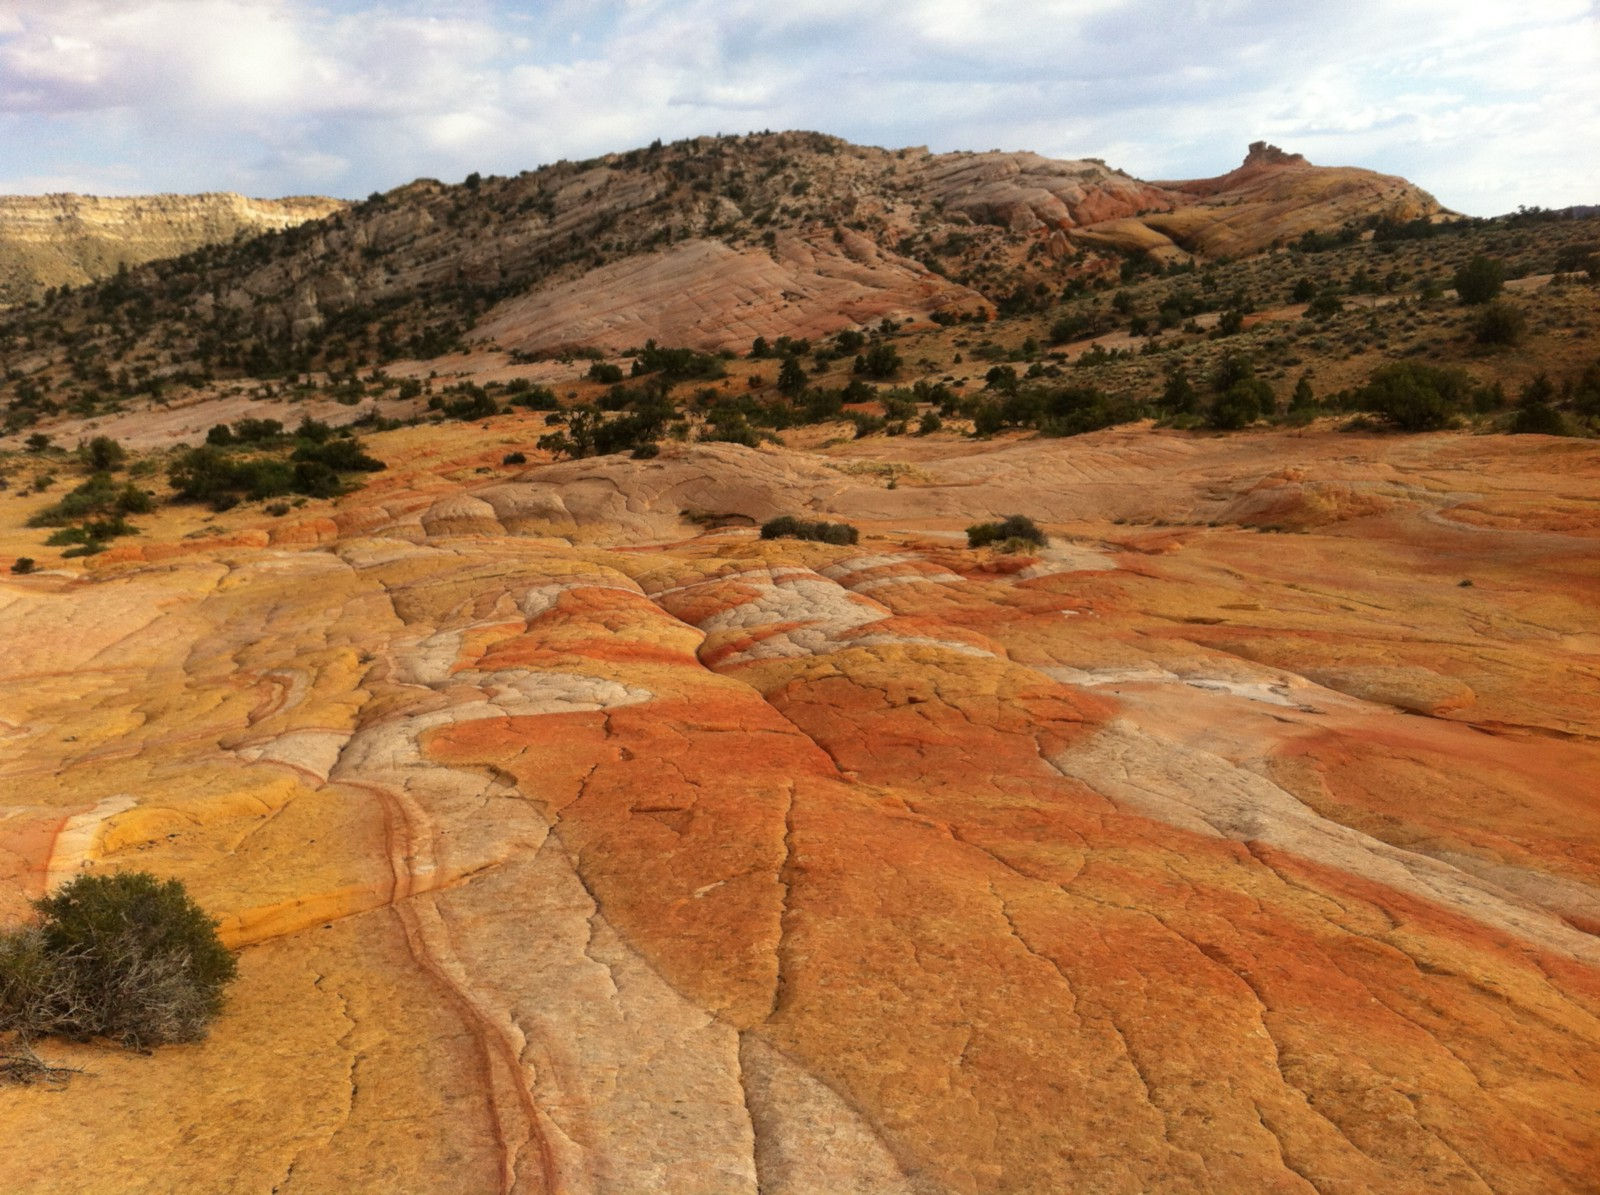 Battery life hacks all you need to know better humans i was standing atop yellow rock in the middle of nowhere utah looking out at the vast beautiful savannah like landscape andtotally lost buycottarizona Image collections